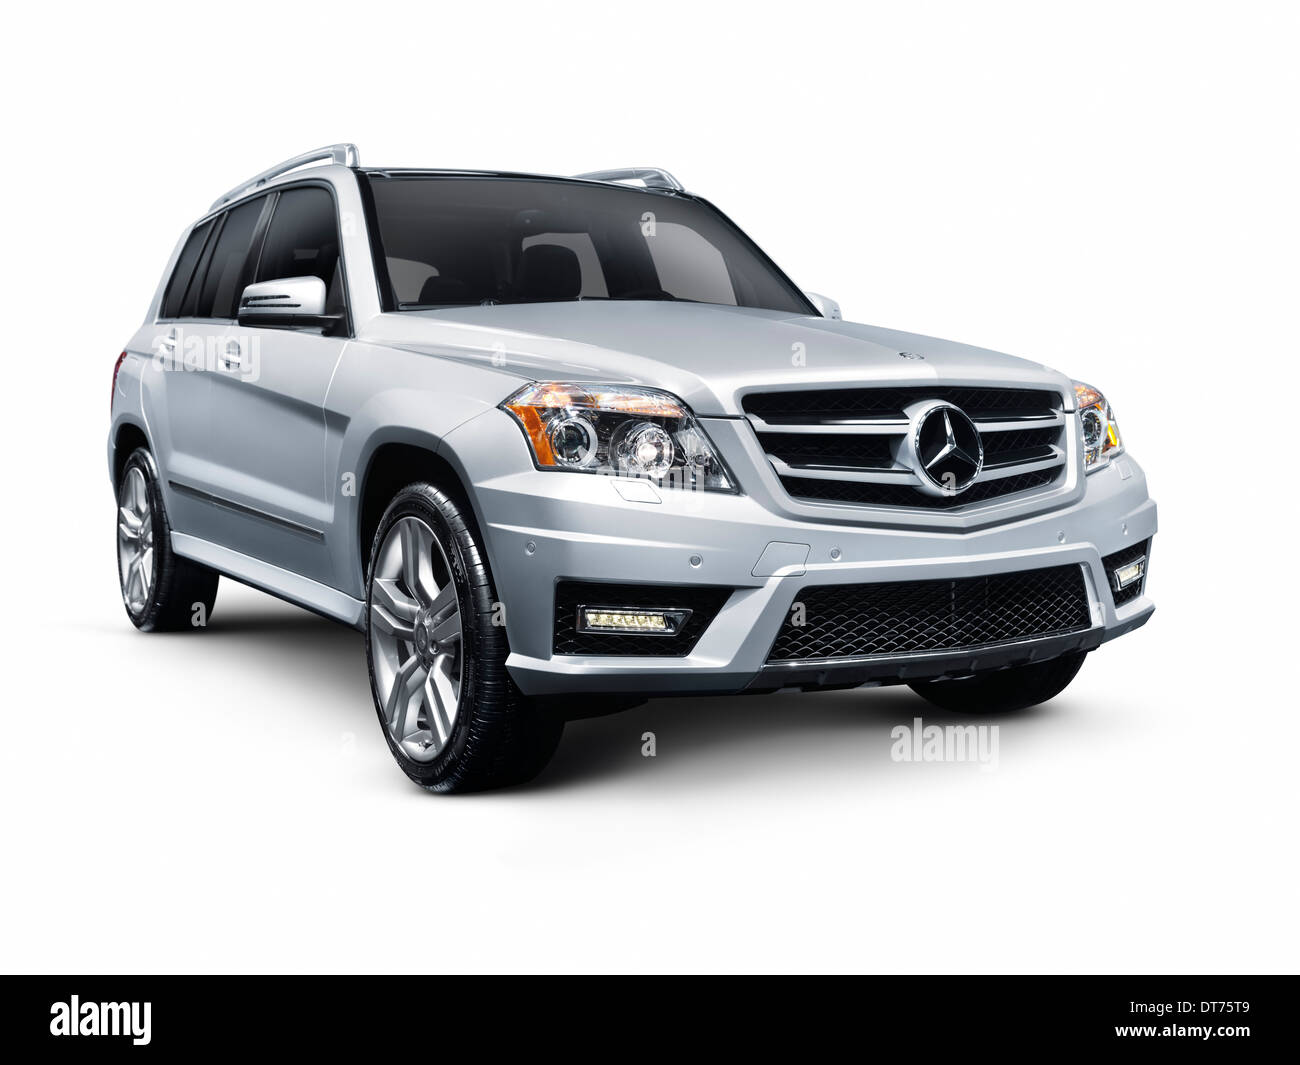 Silver 2012 Mercedes-Benz GLK350 4MATIC SUV. Isolated car on white background with clipping path. - Stock Image